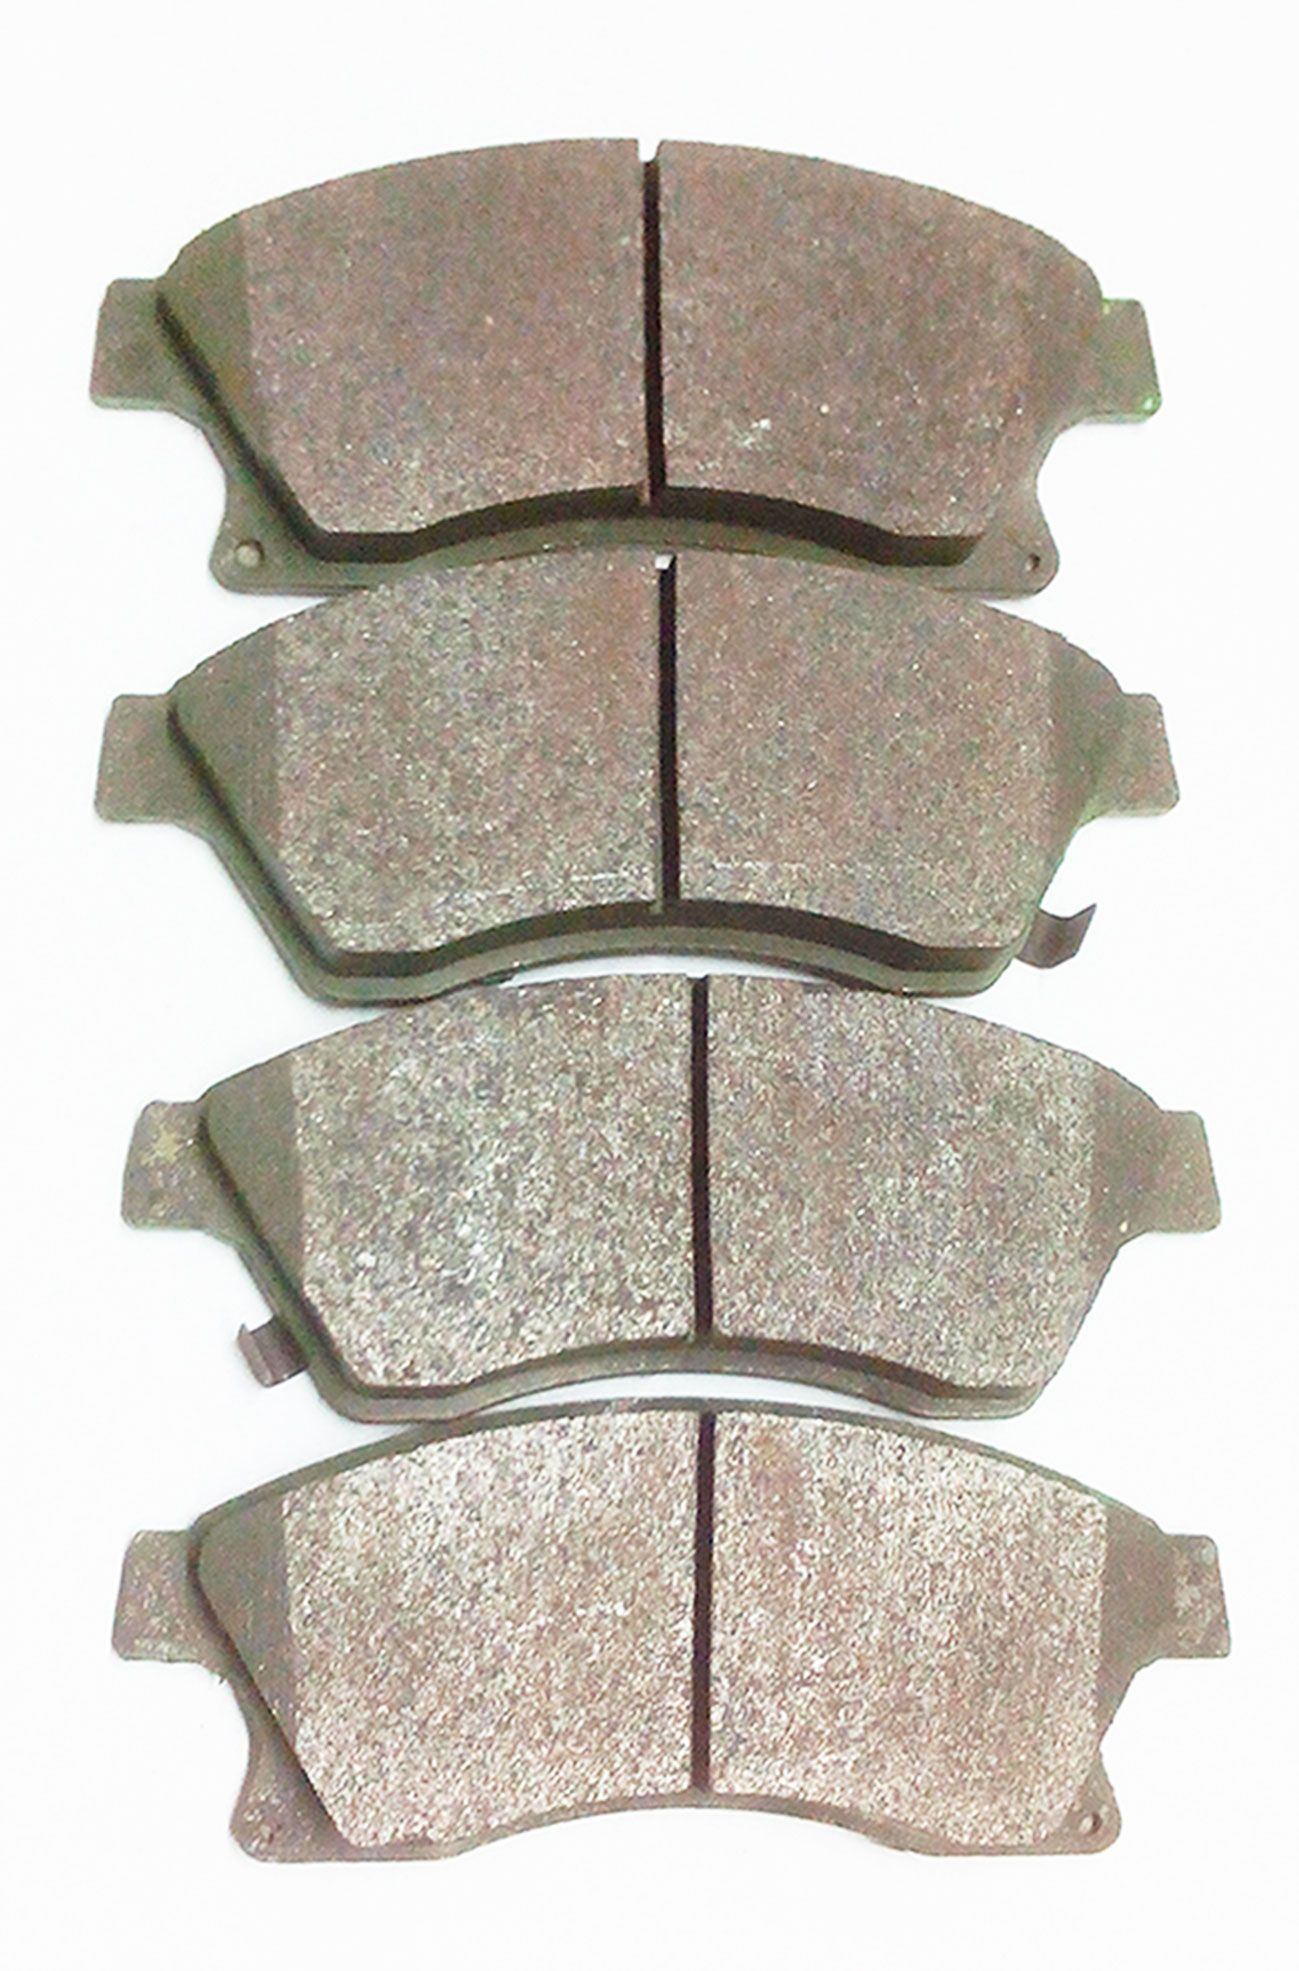 Brake pad-TATA SAFARI DICOR/SUMO GRANDE (FRONT)